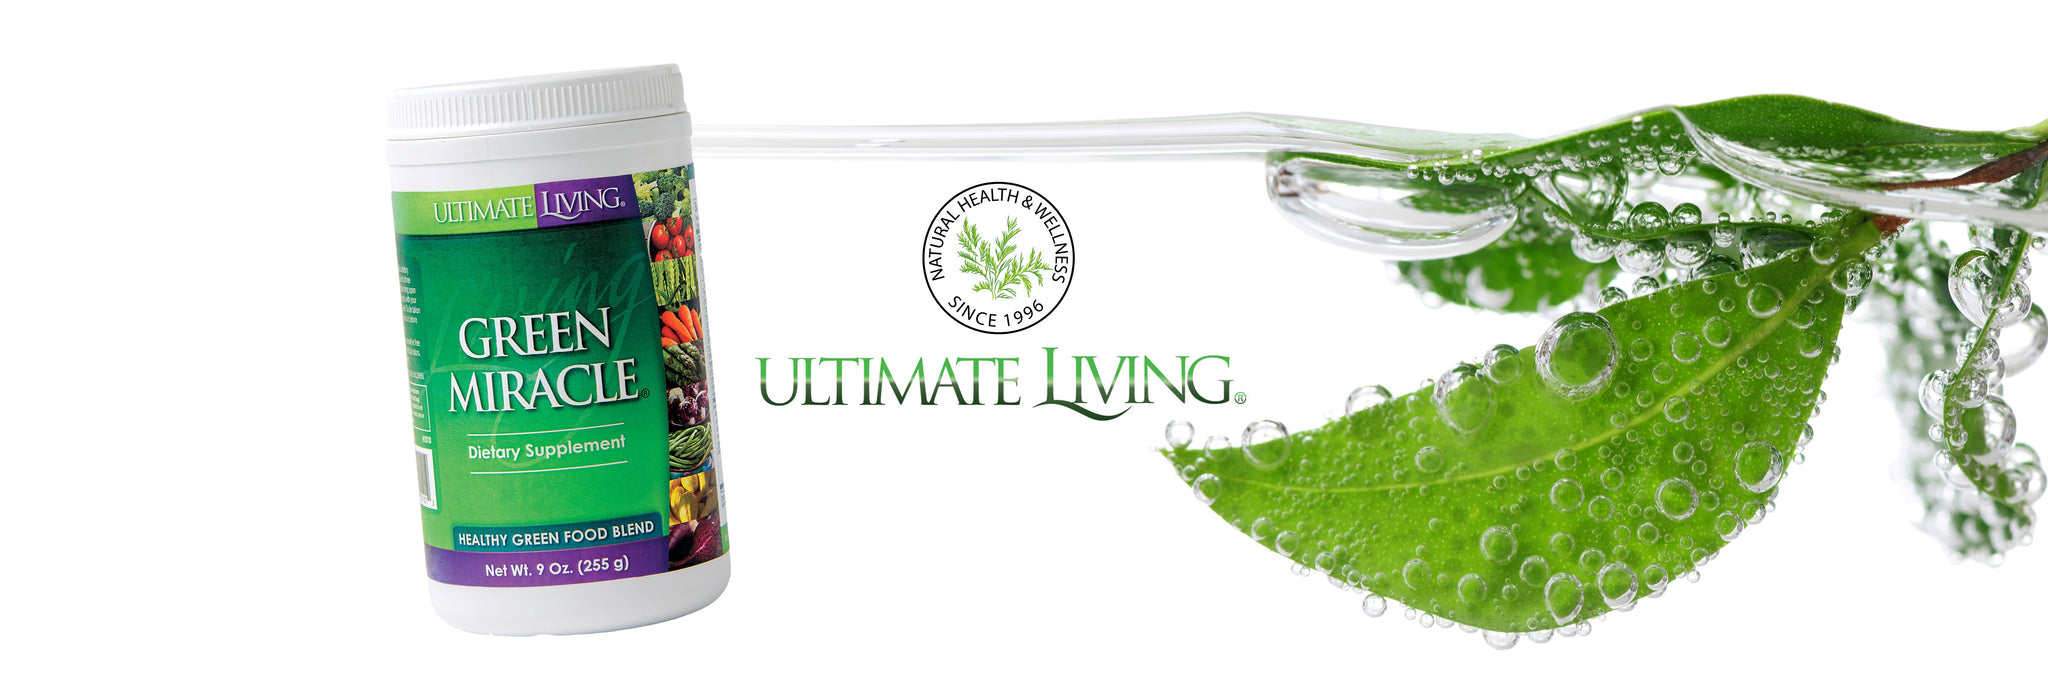 Ultimate Living Natural Nutritional Supplements & Skin Care